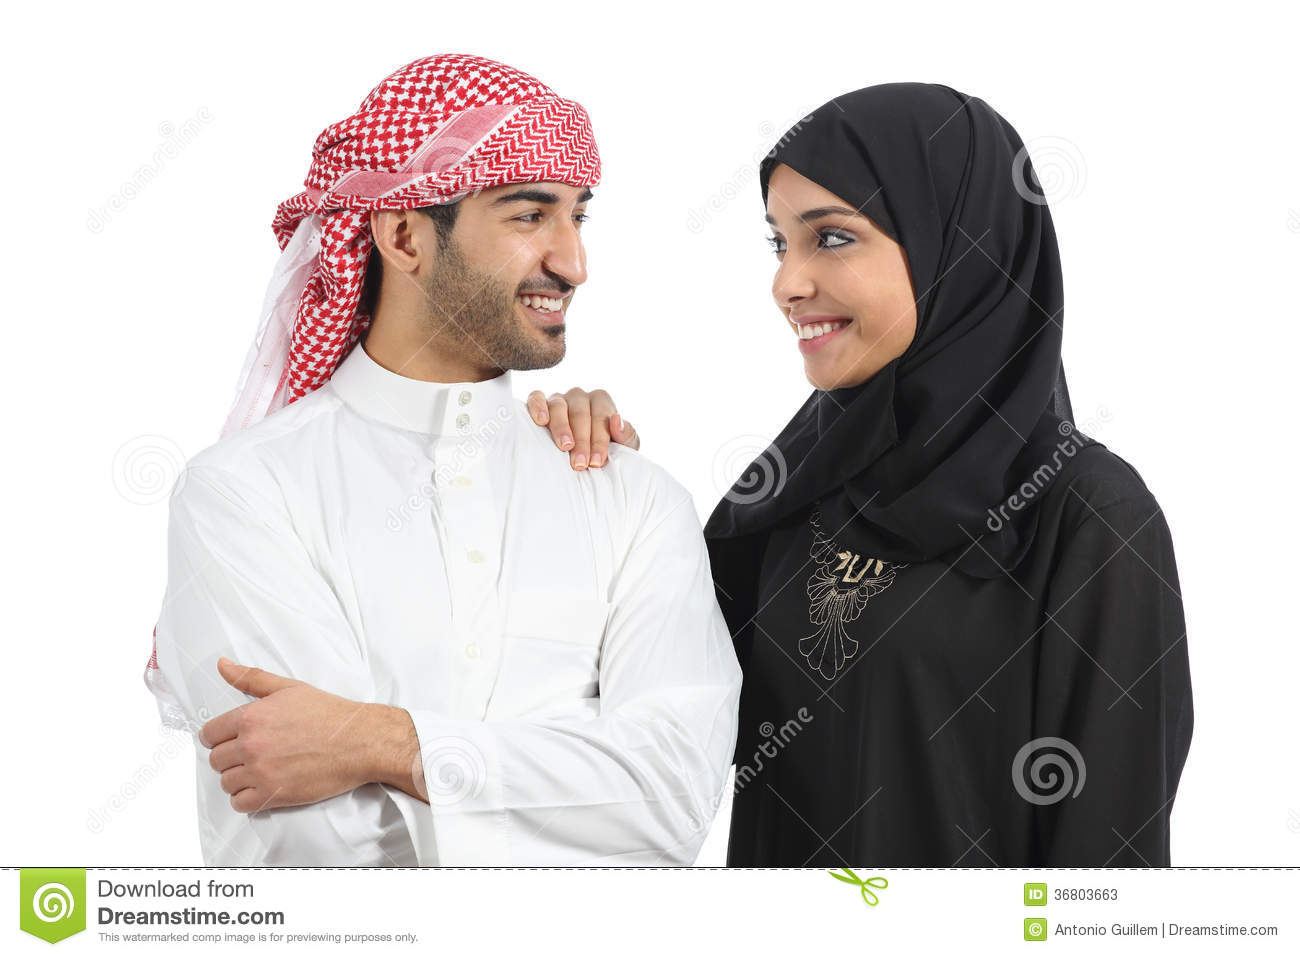 white river muslim single men 8 things to expect when dating a muslim girl hesse kassel ban on romantic and sexual contact with non-muslim men tapped into it's angry white male.